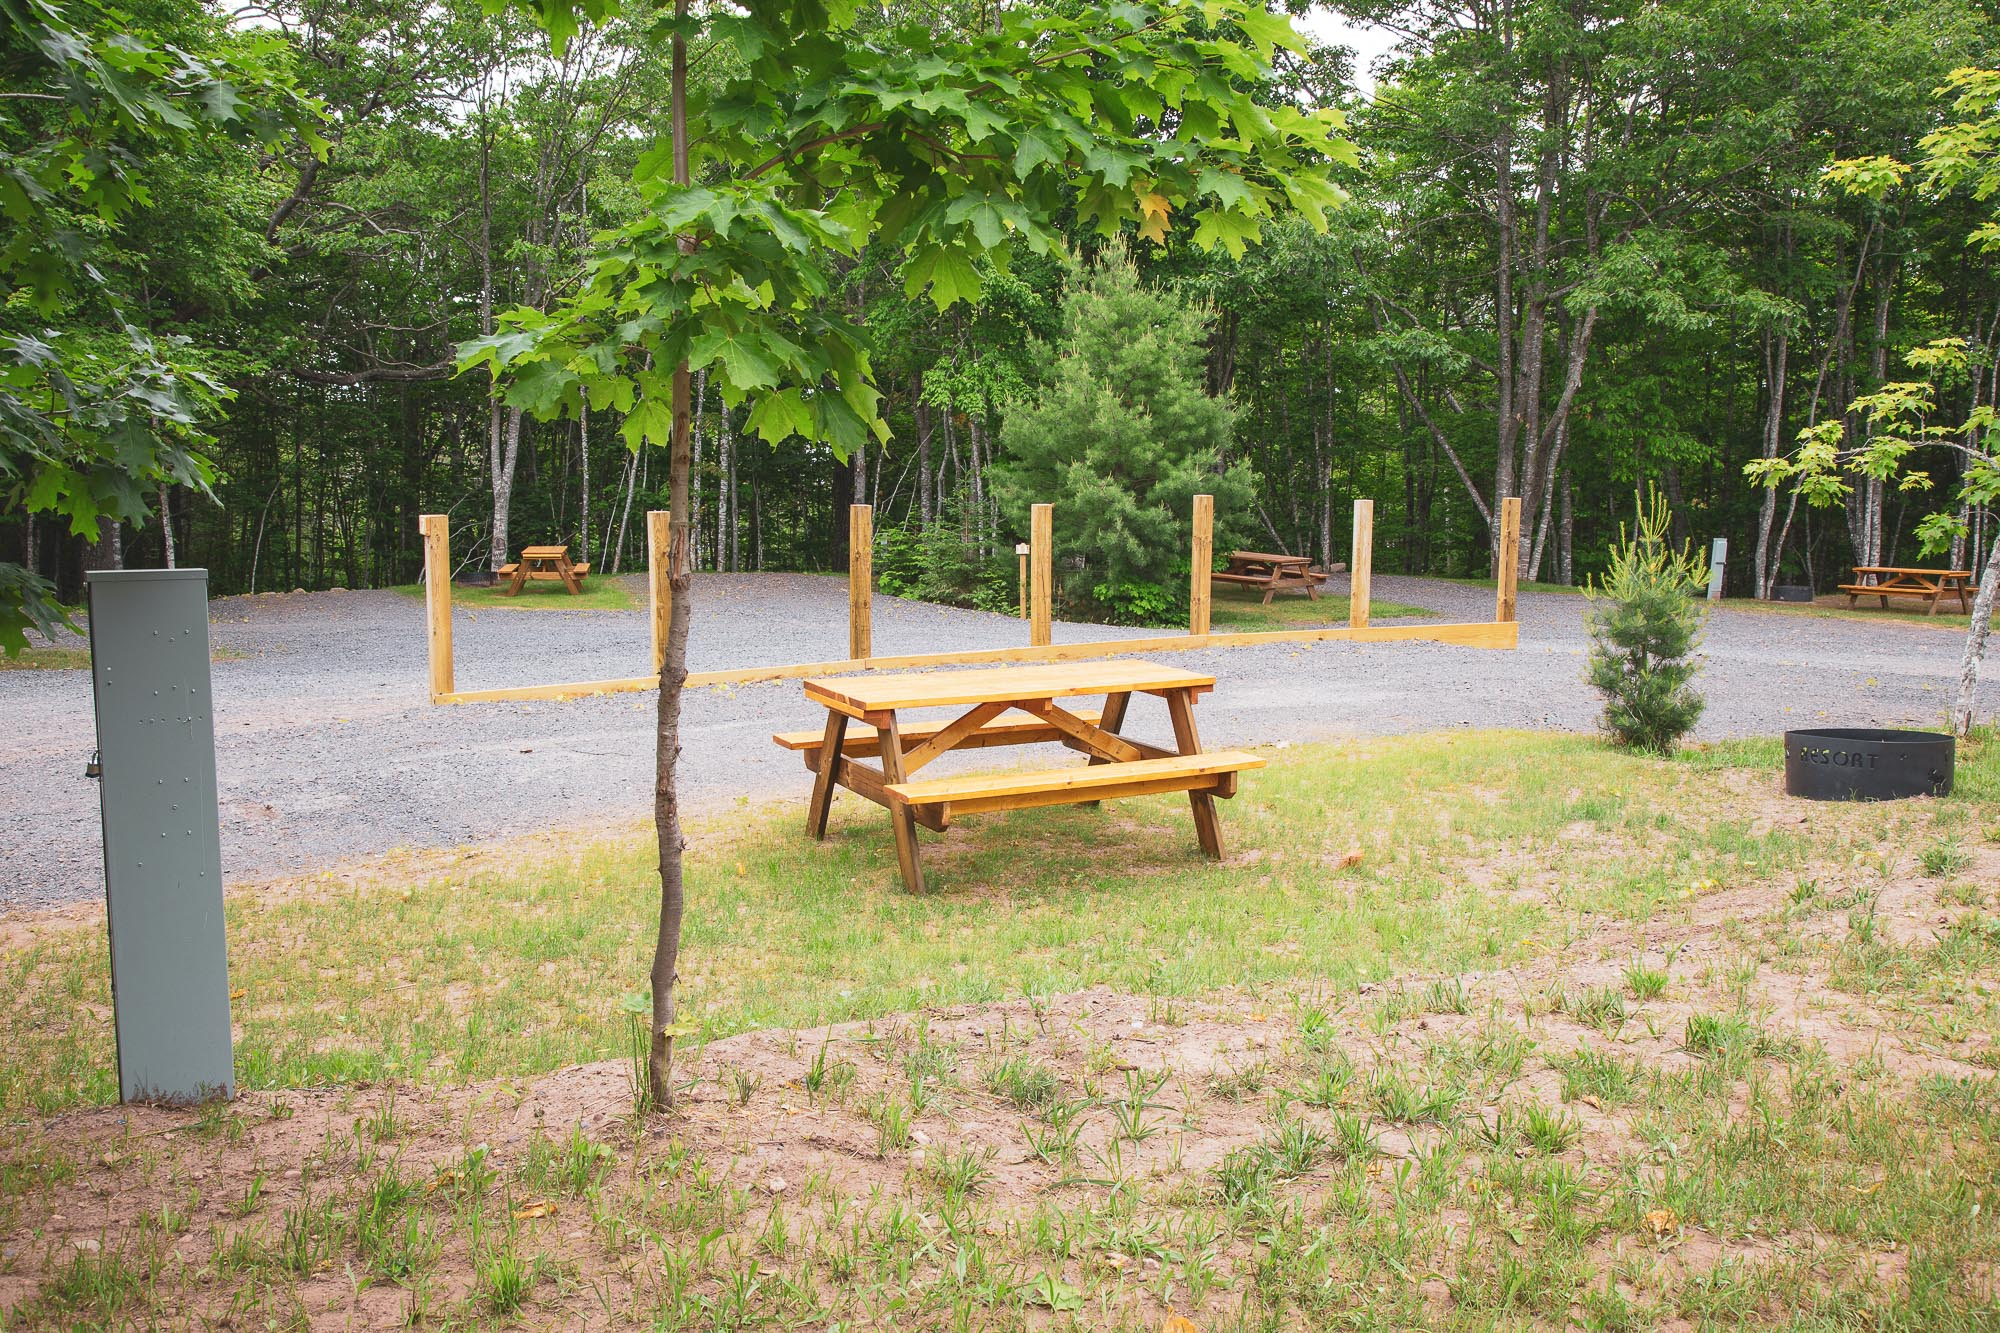 Photo of Campground Site 7  at the Wilderness Resort in Lac La Belle Michigan